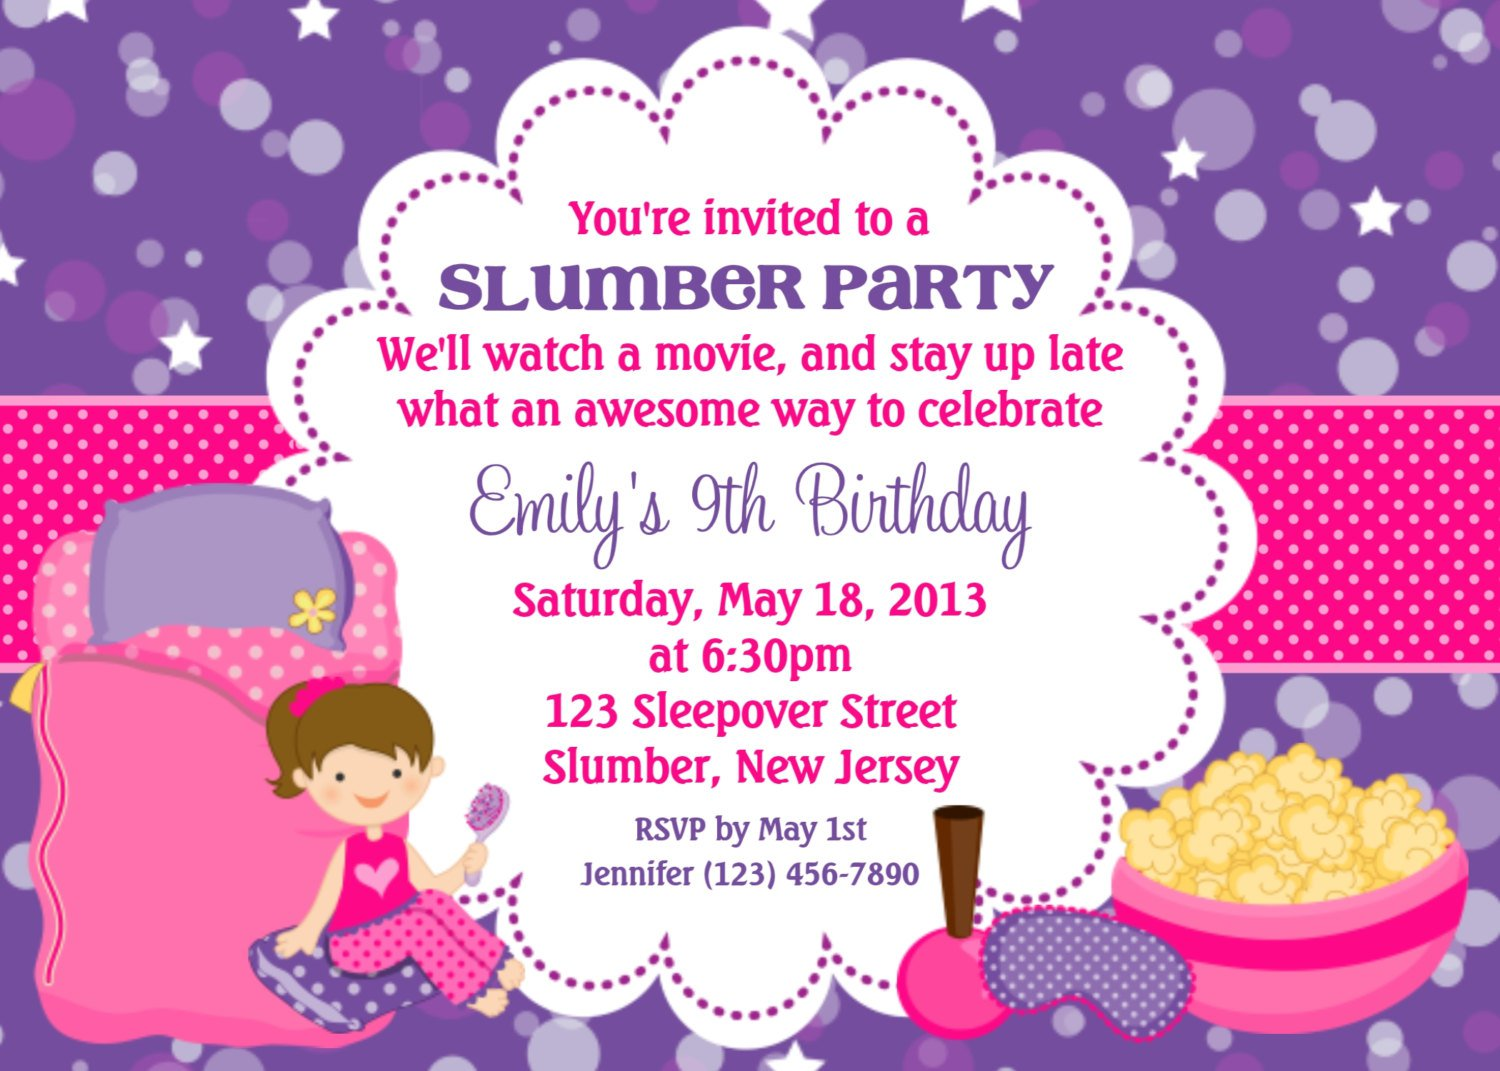 Slumber Party Invitation Wording Samples